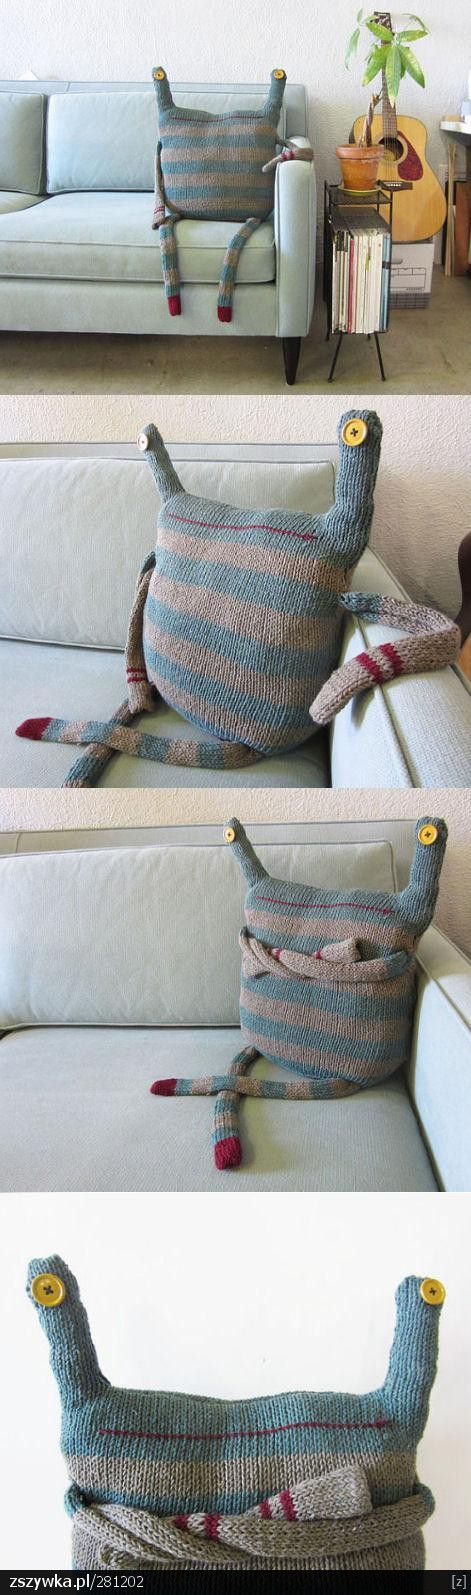 Recycled jumper with character!